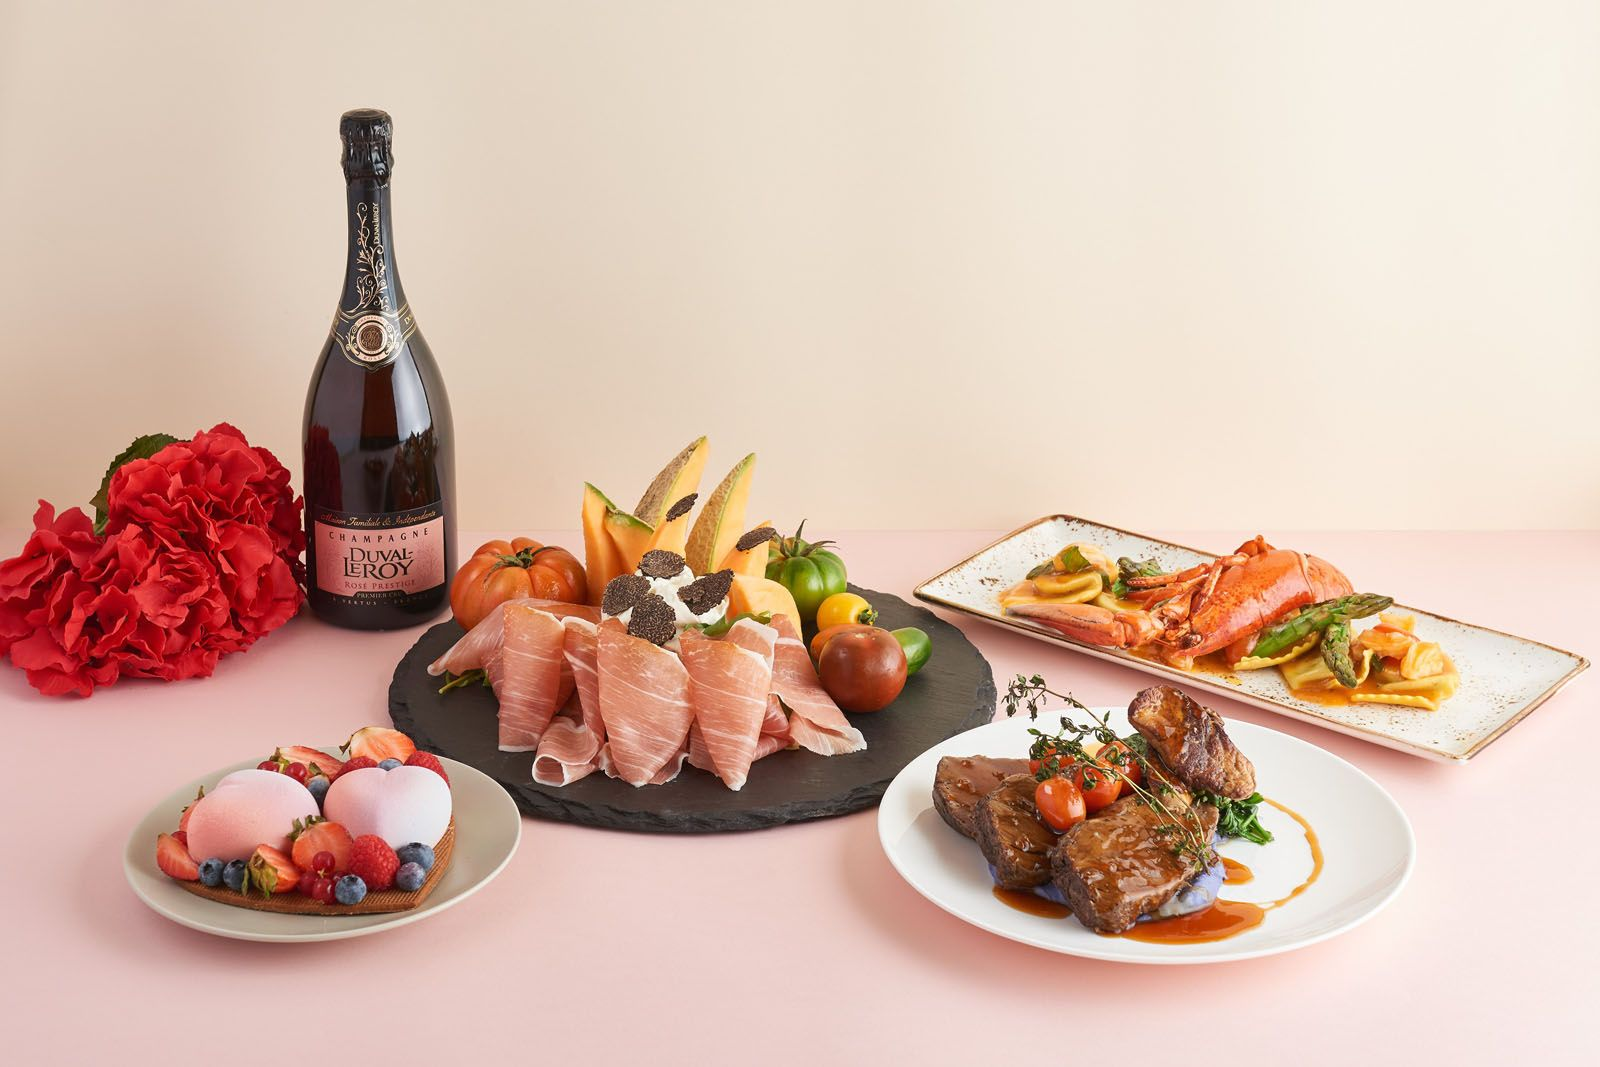 The Best Places To Dine At For Valentine's Day in Singapore